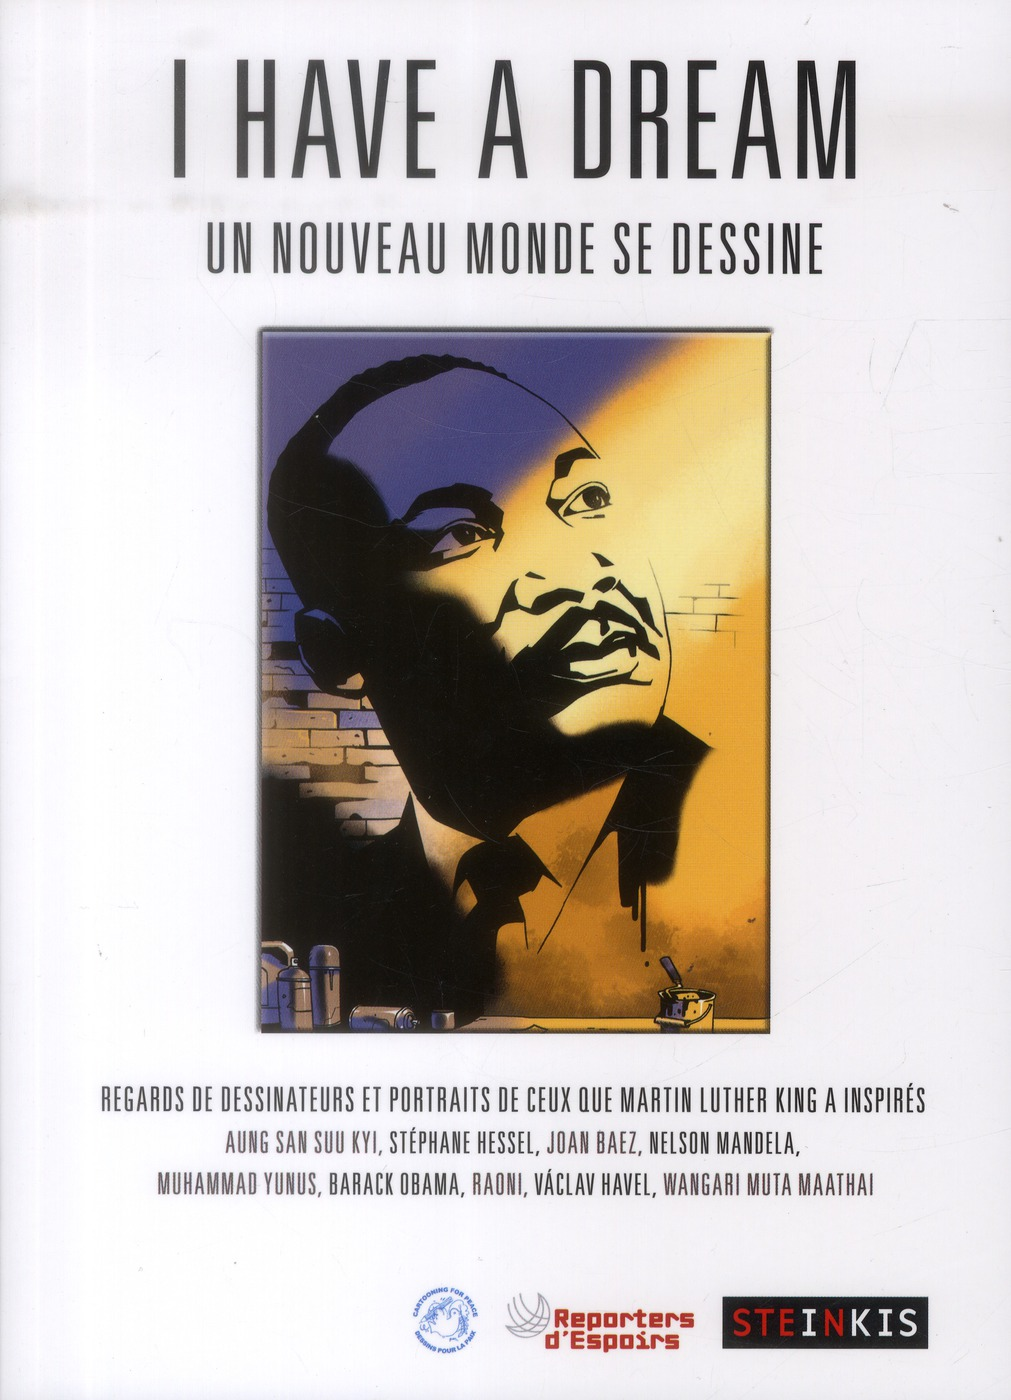 I HAVE A DREAM, UN NOUVEAU MONDE SE DESSINE